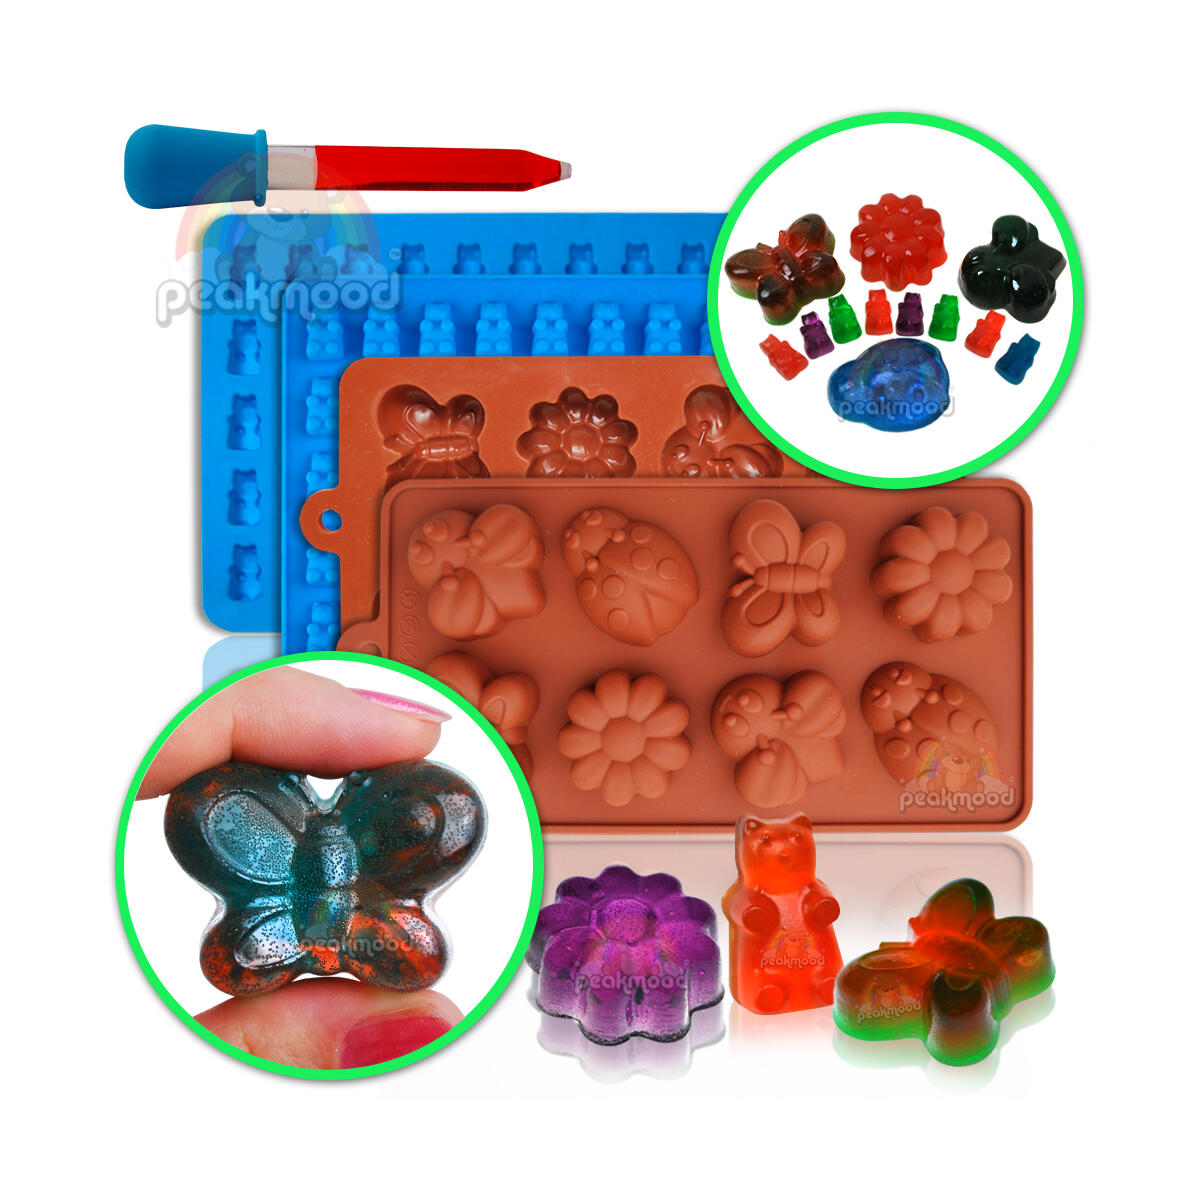 Gummy bear molds | Gummy molds with bee butterfly lady bug and flower silicone molds